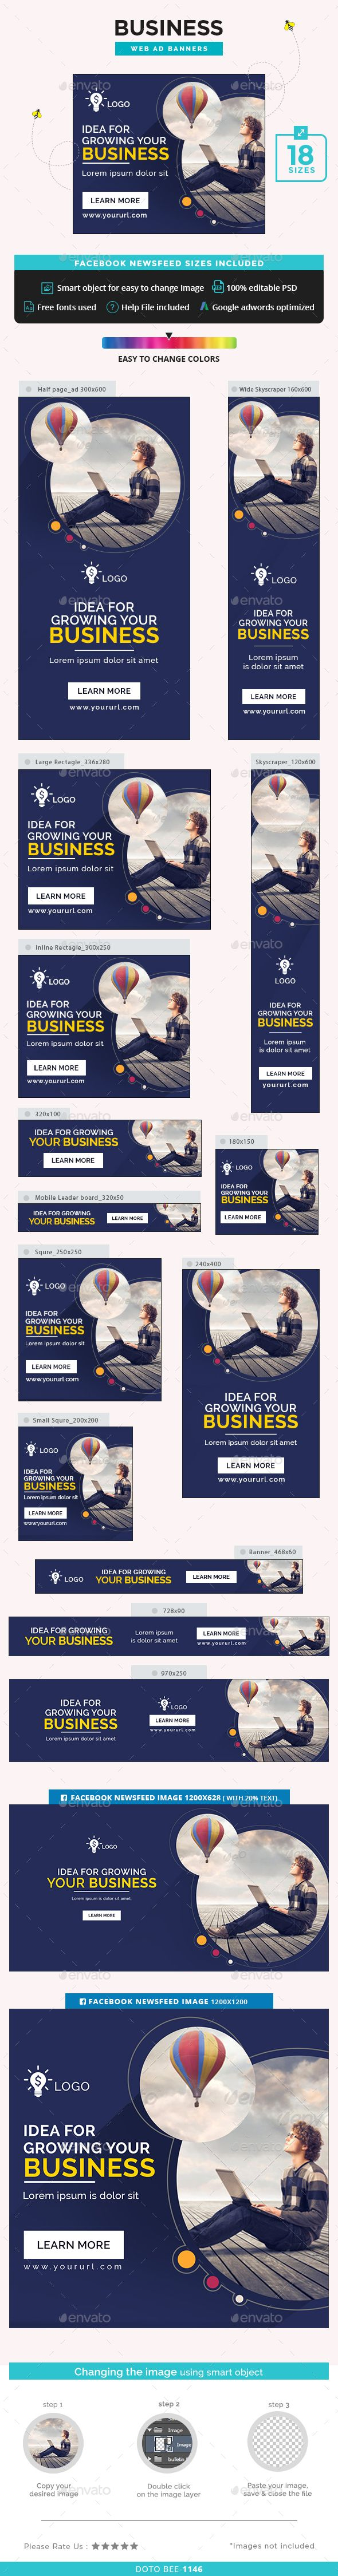 Business Web Banners Design Template PSD. Download here: http://graphicriver.net/item/business-banners/14859851?ref=ksioks